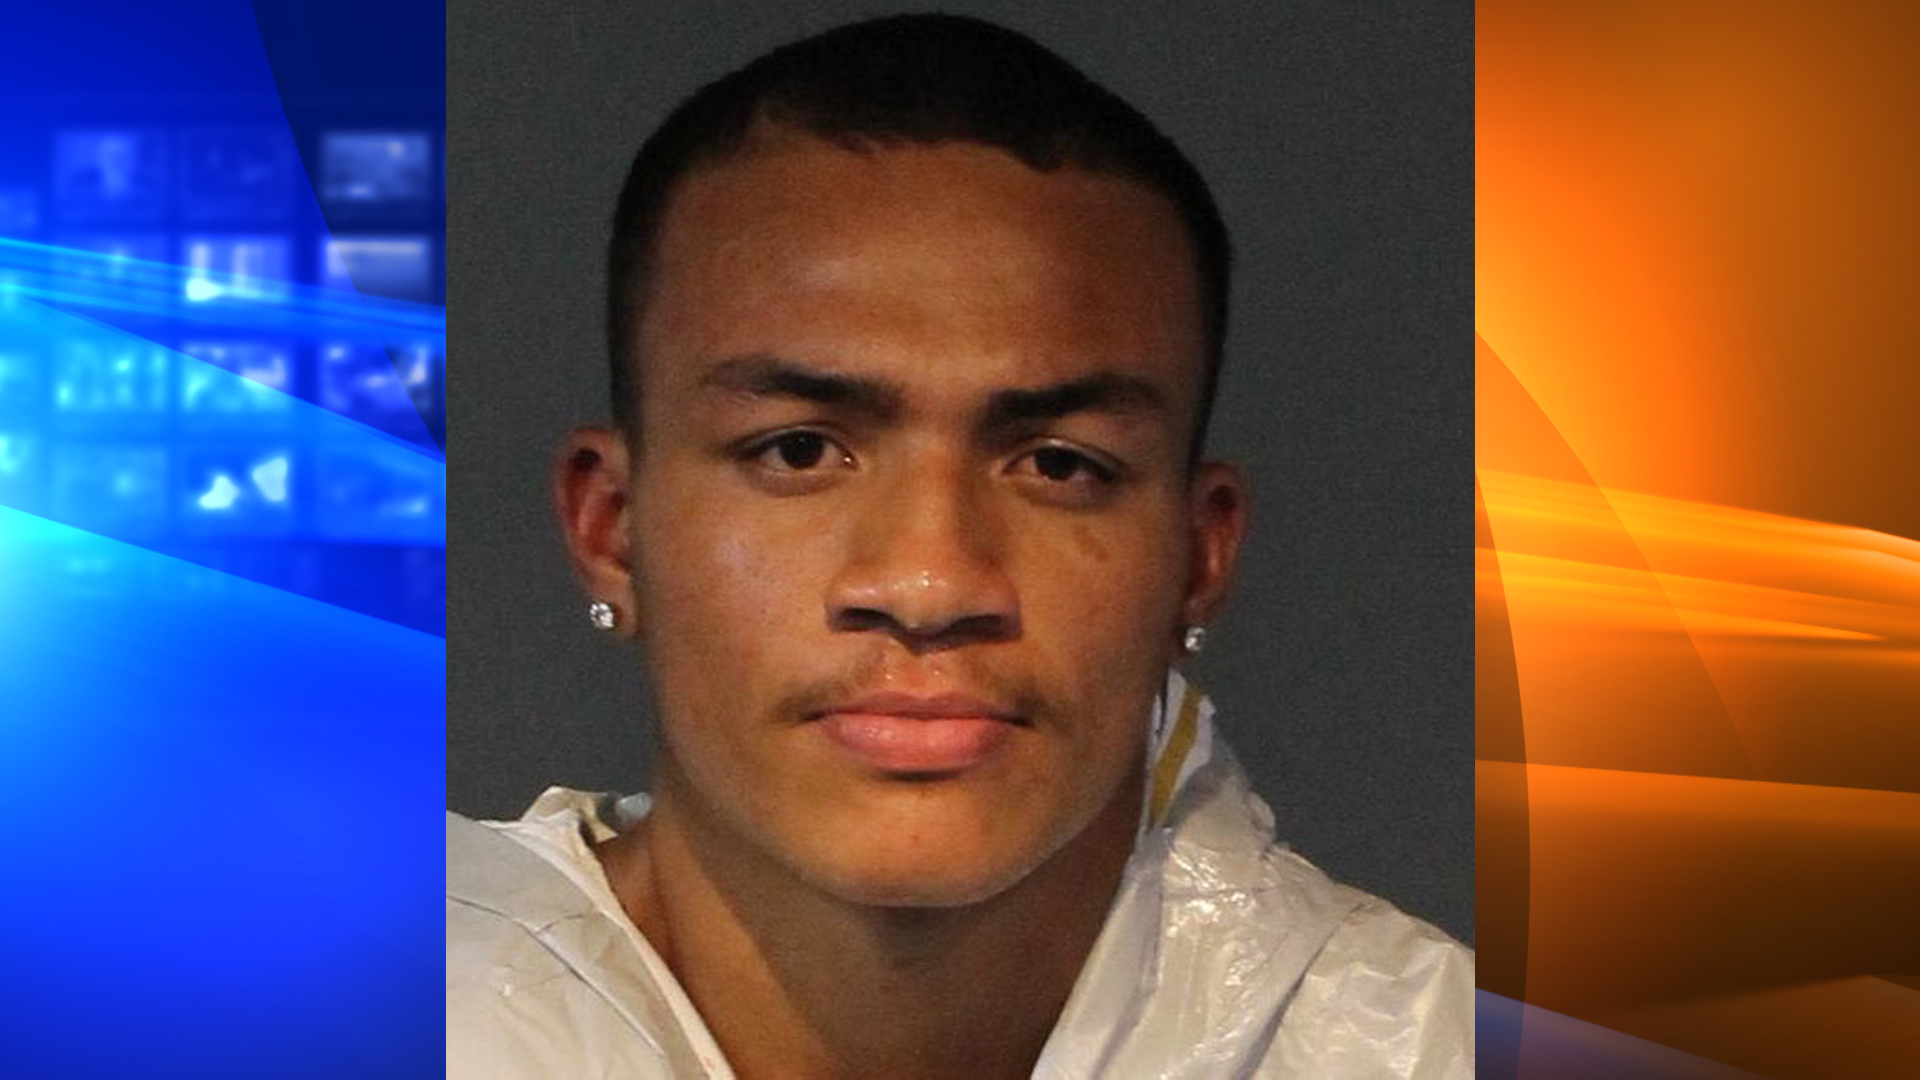 Tevin Johnson is seen in a booking photo released by the Washoe County Sheriff's Office.